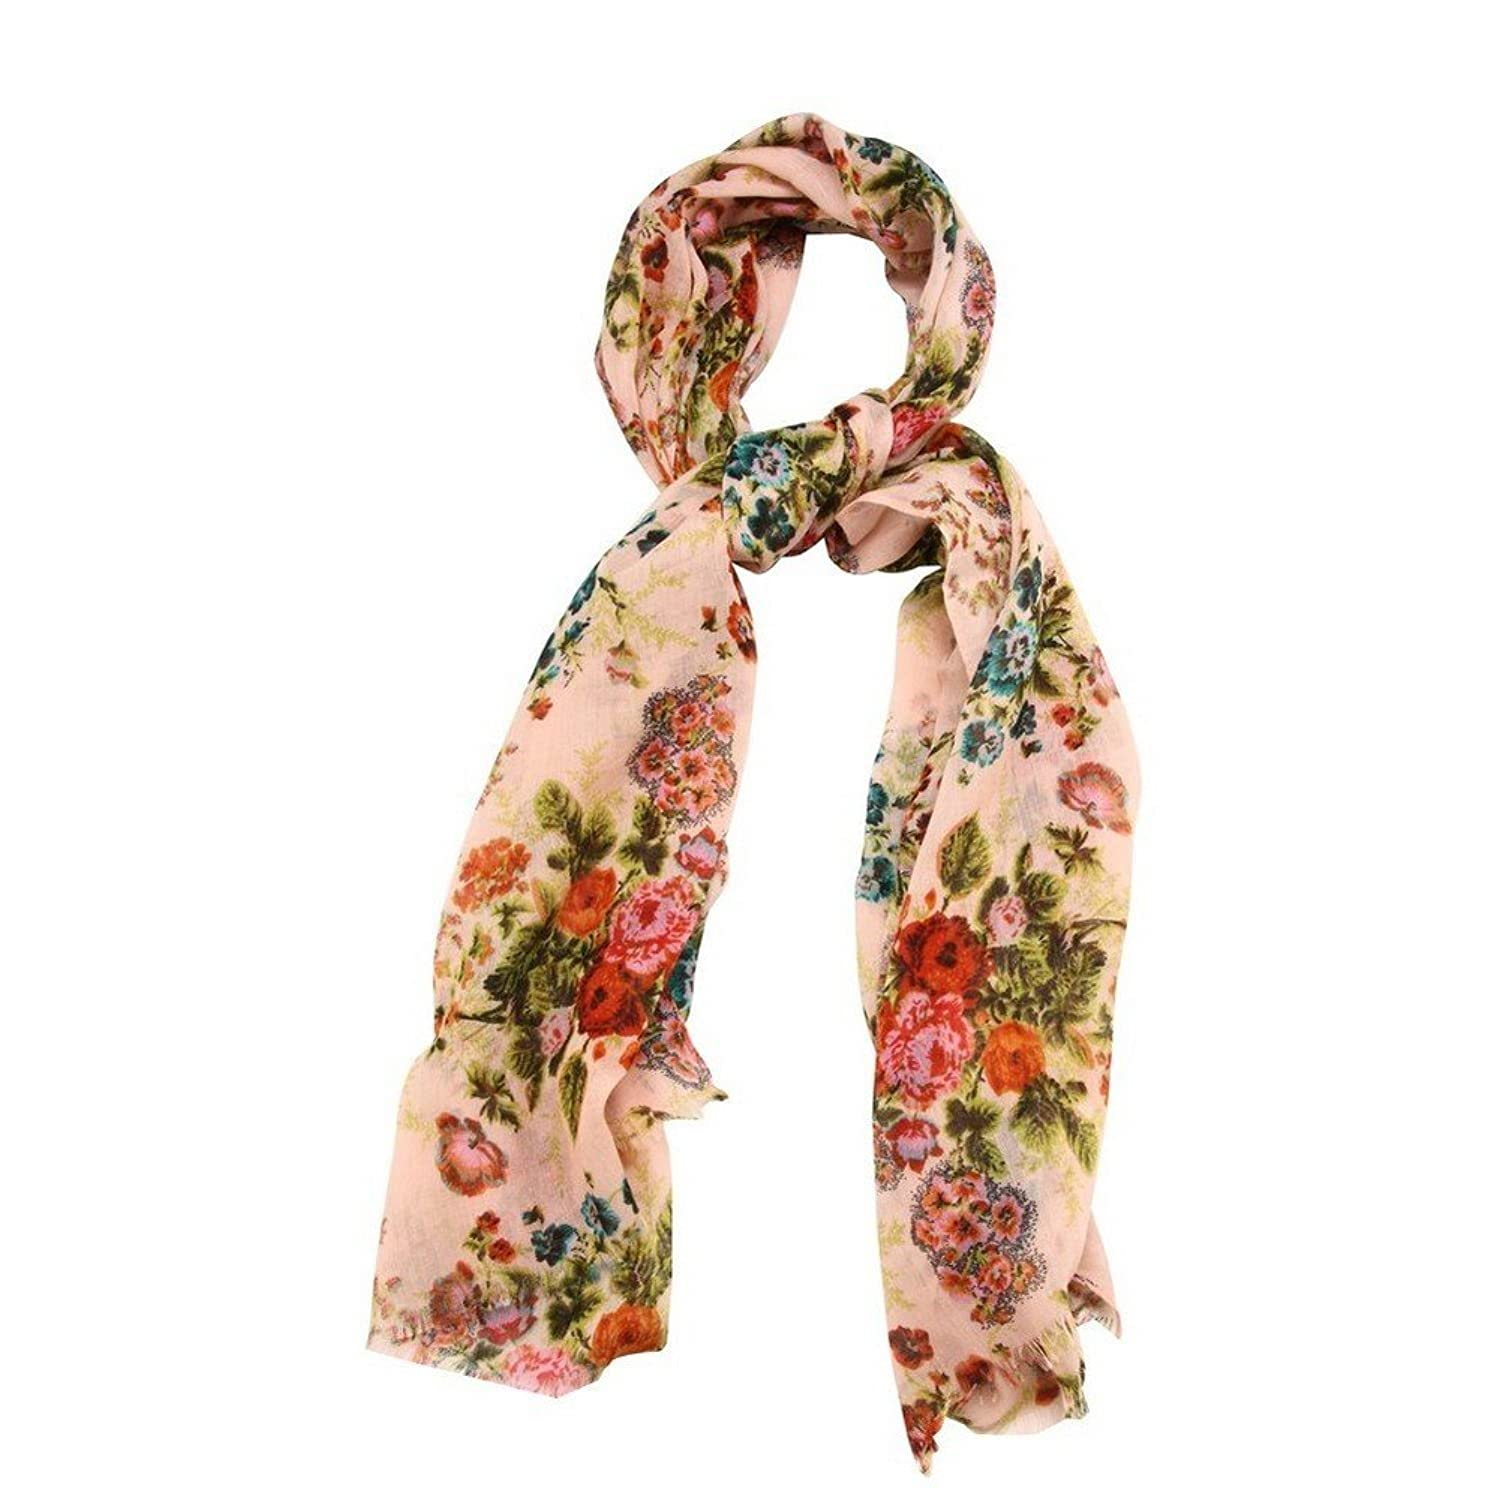 Scarf Vintage Floral Pink Made With Polyester by JOE COOL